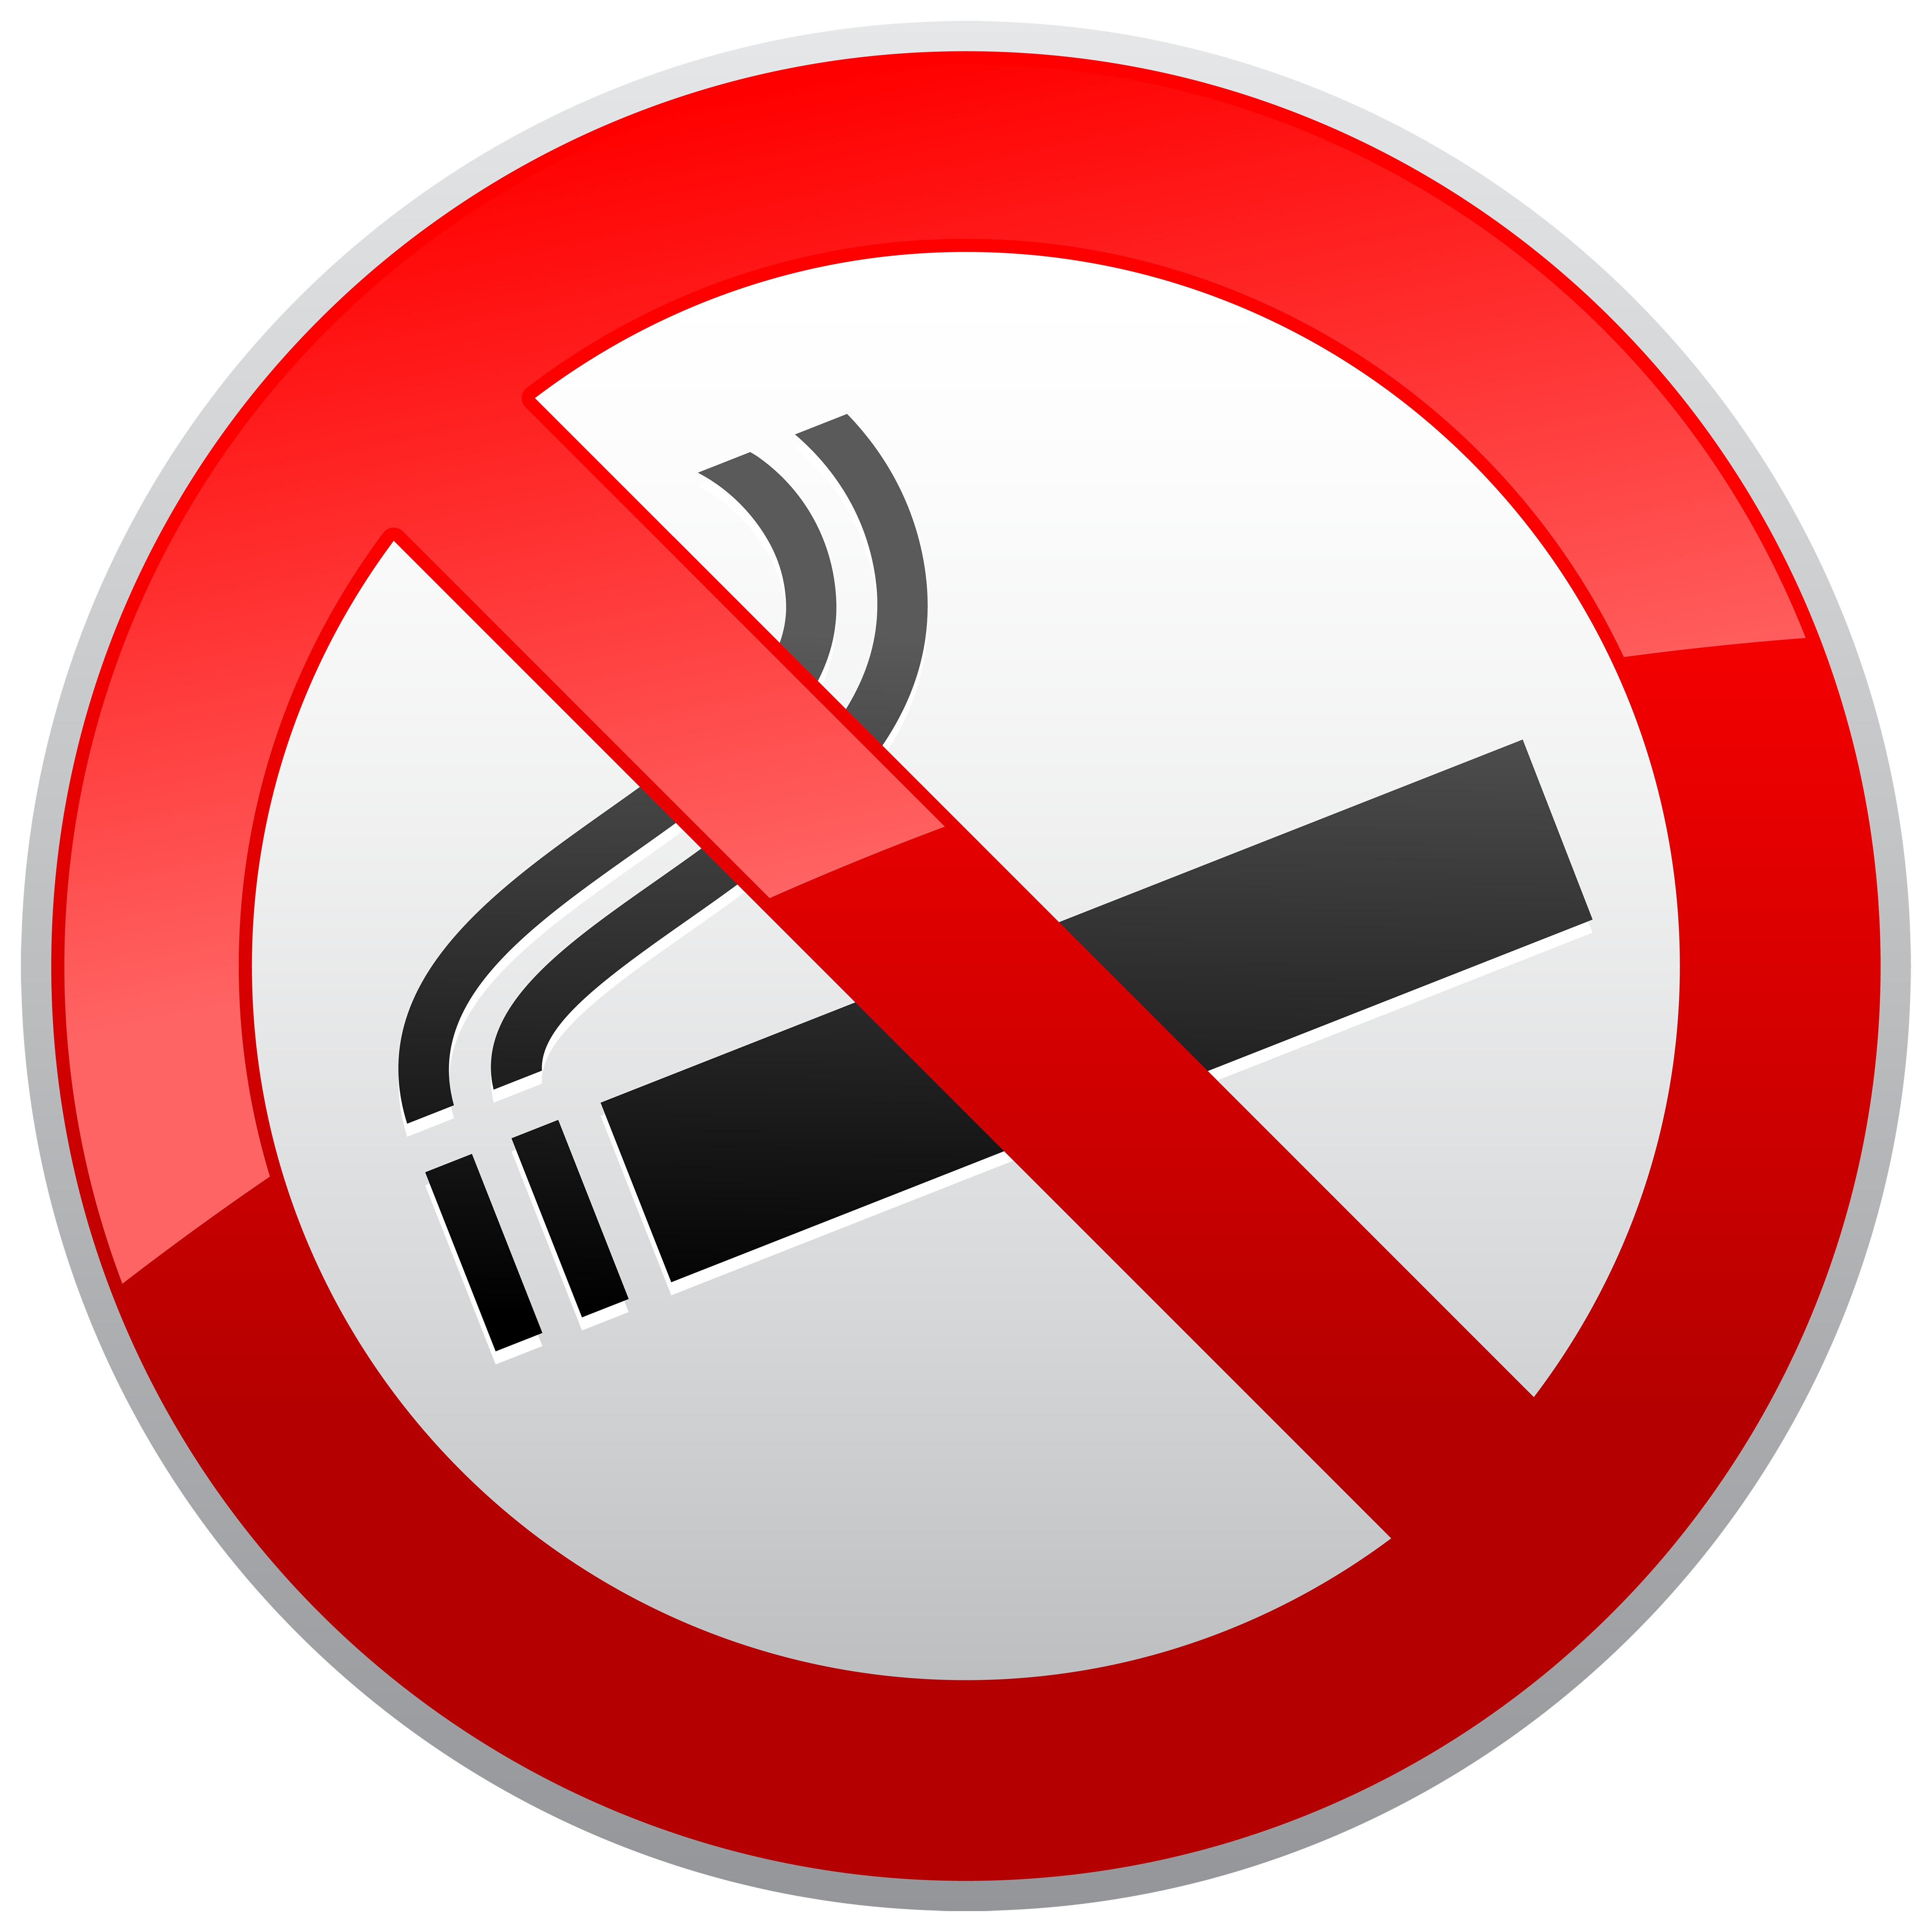 No Smoking Prohibition Sign PNG Clipart Image.